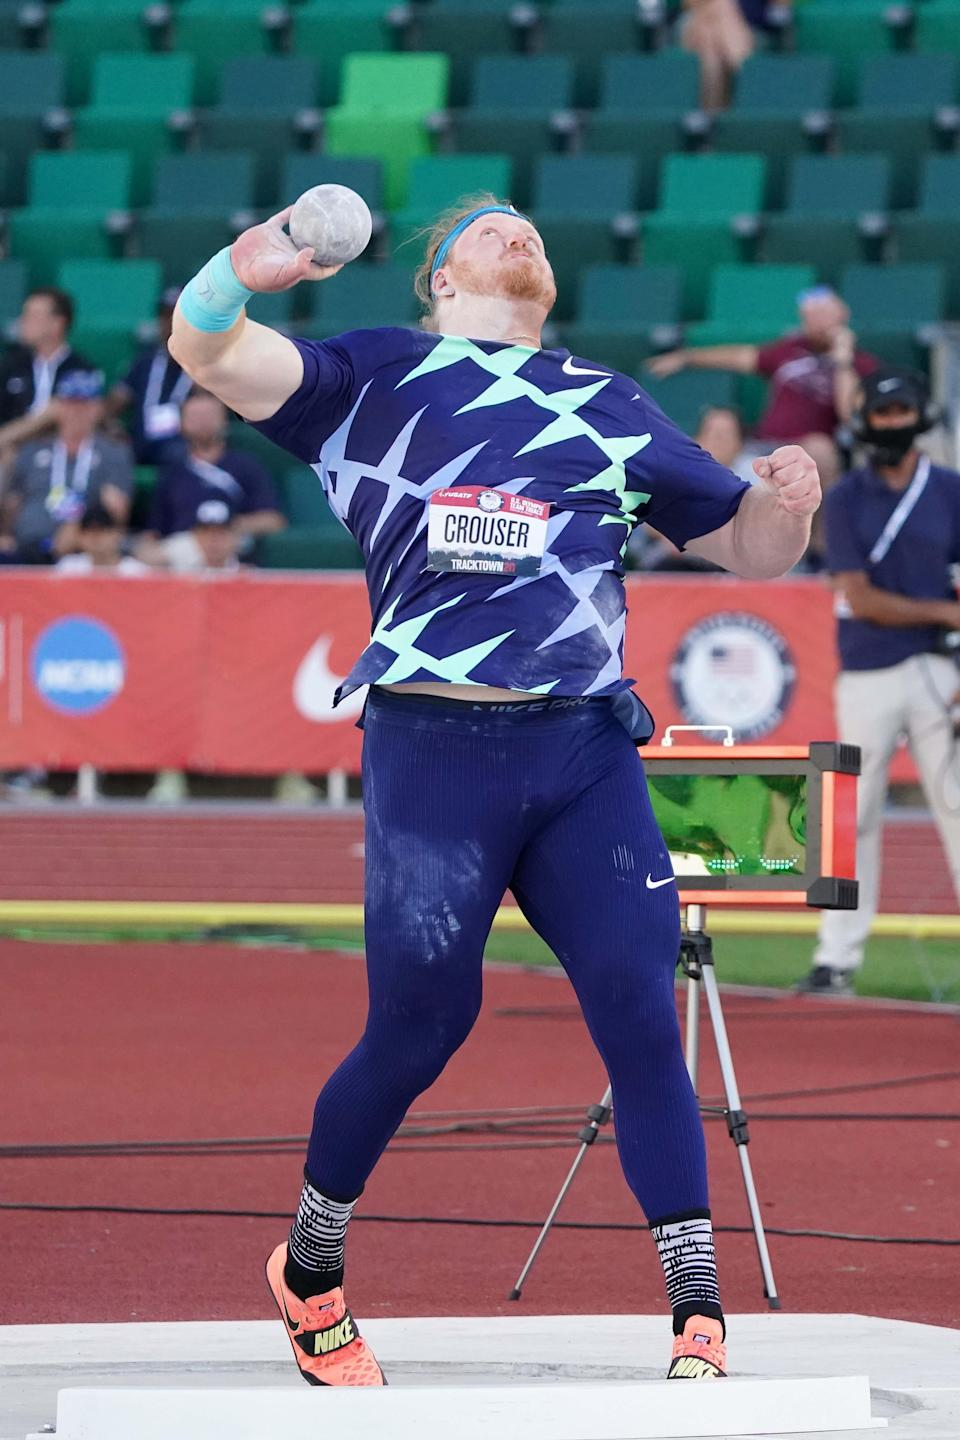 Ryan Crouser, who set a world shot put record at the U.S. Olympic Trials, won the gold medal at the 2016 games in Brazil.